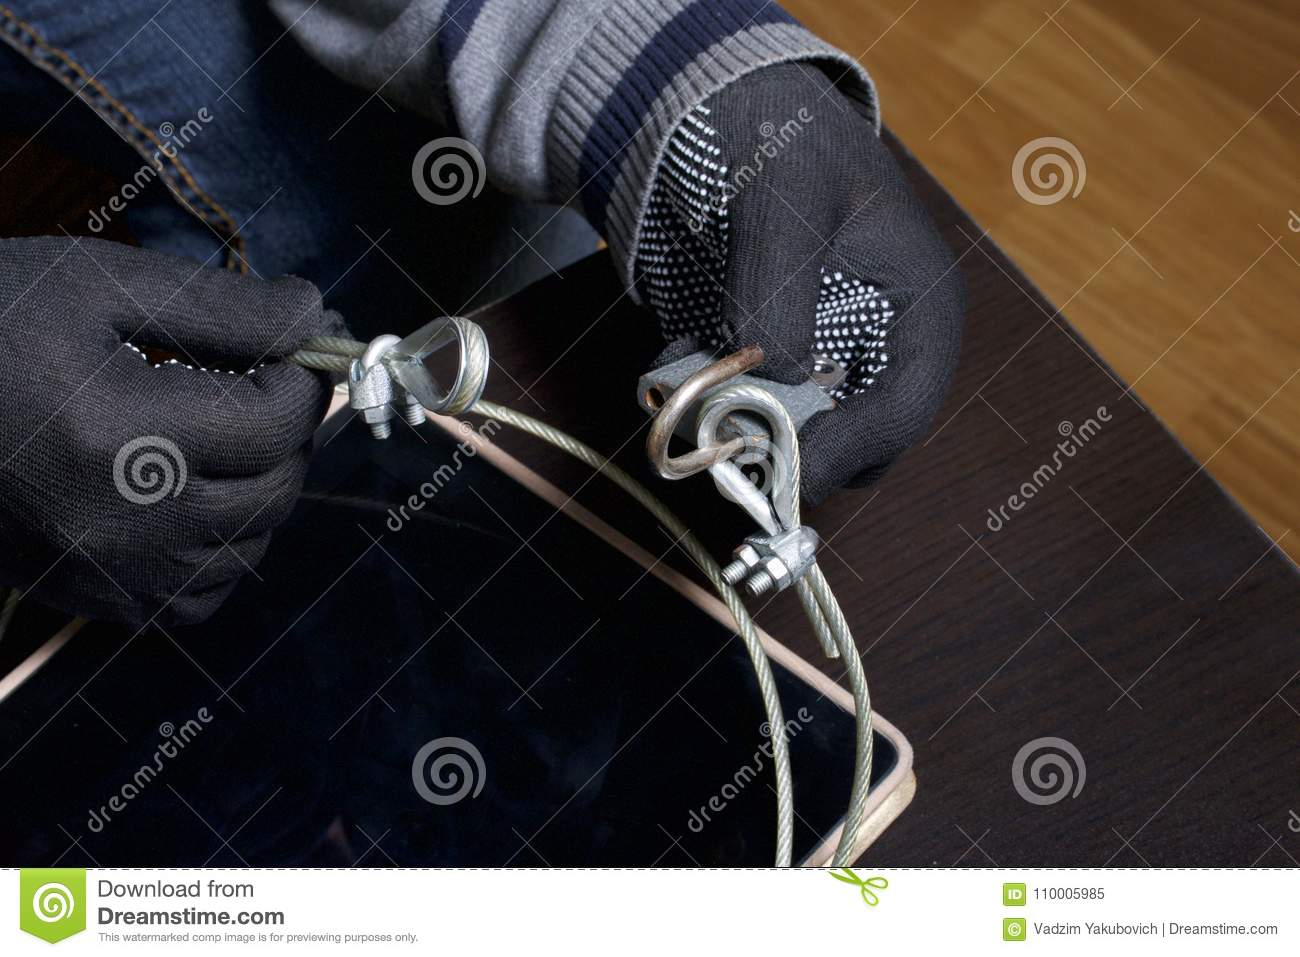 Computer security. Protection of access to data. The tablet is protected by a security cable and a lock. An attacker with gloves t